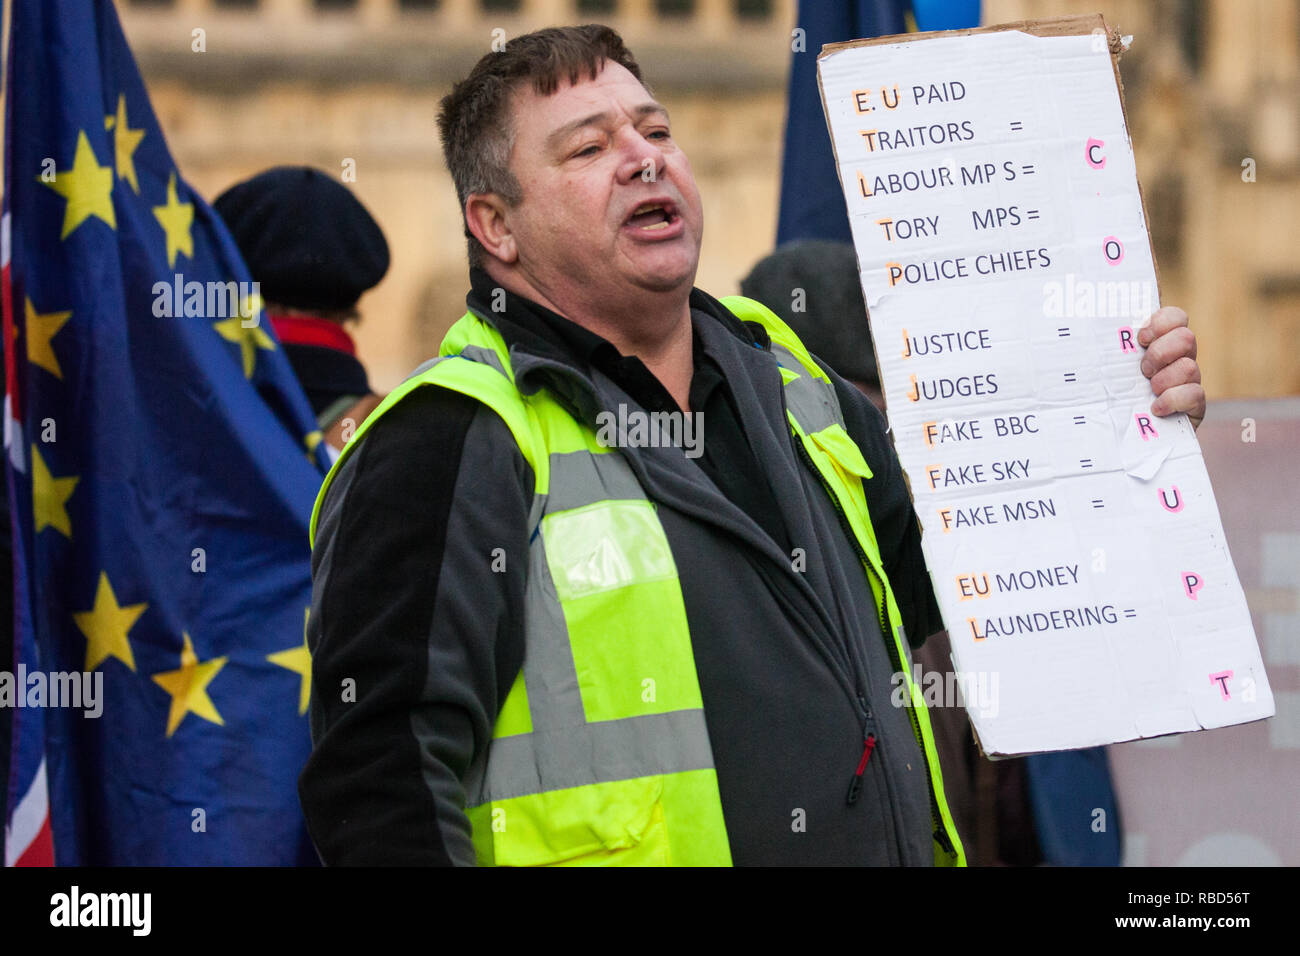 London, UK. 9th Jan, 2019. An activist from pro-Brexit group Yellow Vests UK antagonises pro-EU activists from SODEM (Stand of Defiance European Movement) during rival protests outside Parliament on the first day of the debate in the House of Commons on Prime Minister Theresa May's proposed Brexit withdrawal agreement. Credit: Mark Kerrison/Alamy Live News - Stock Image